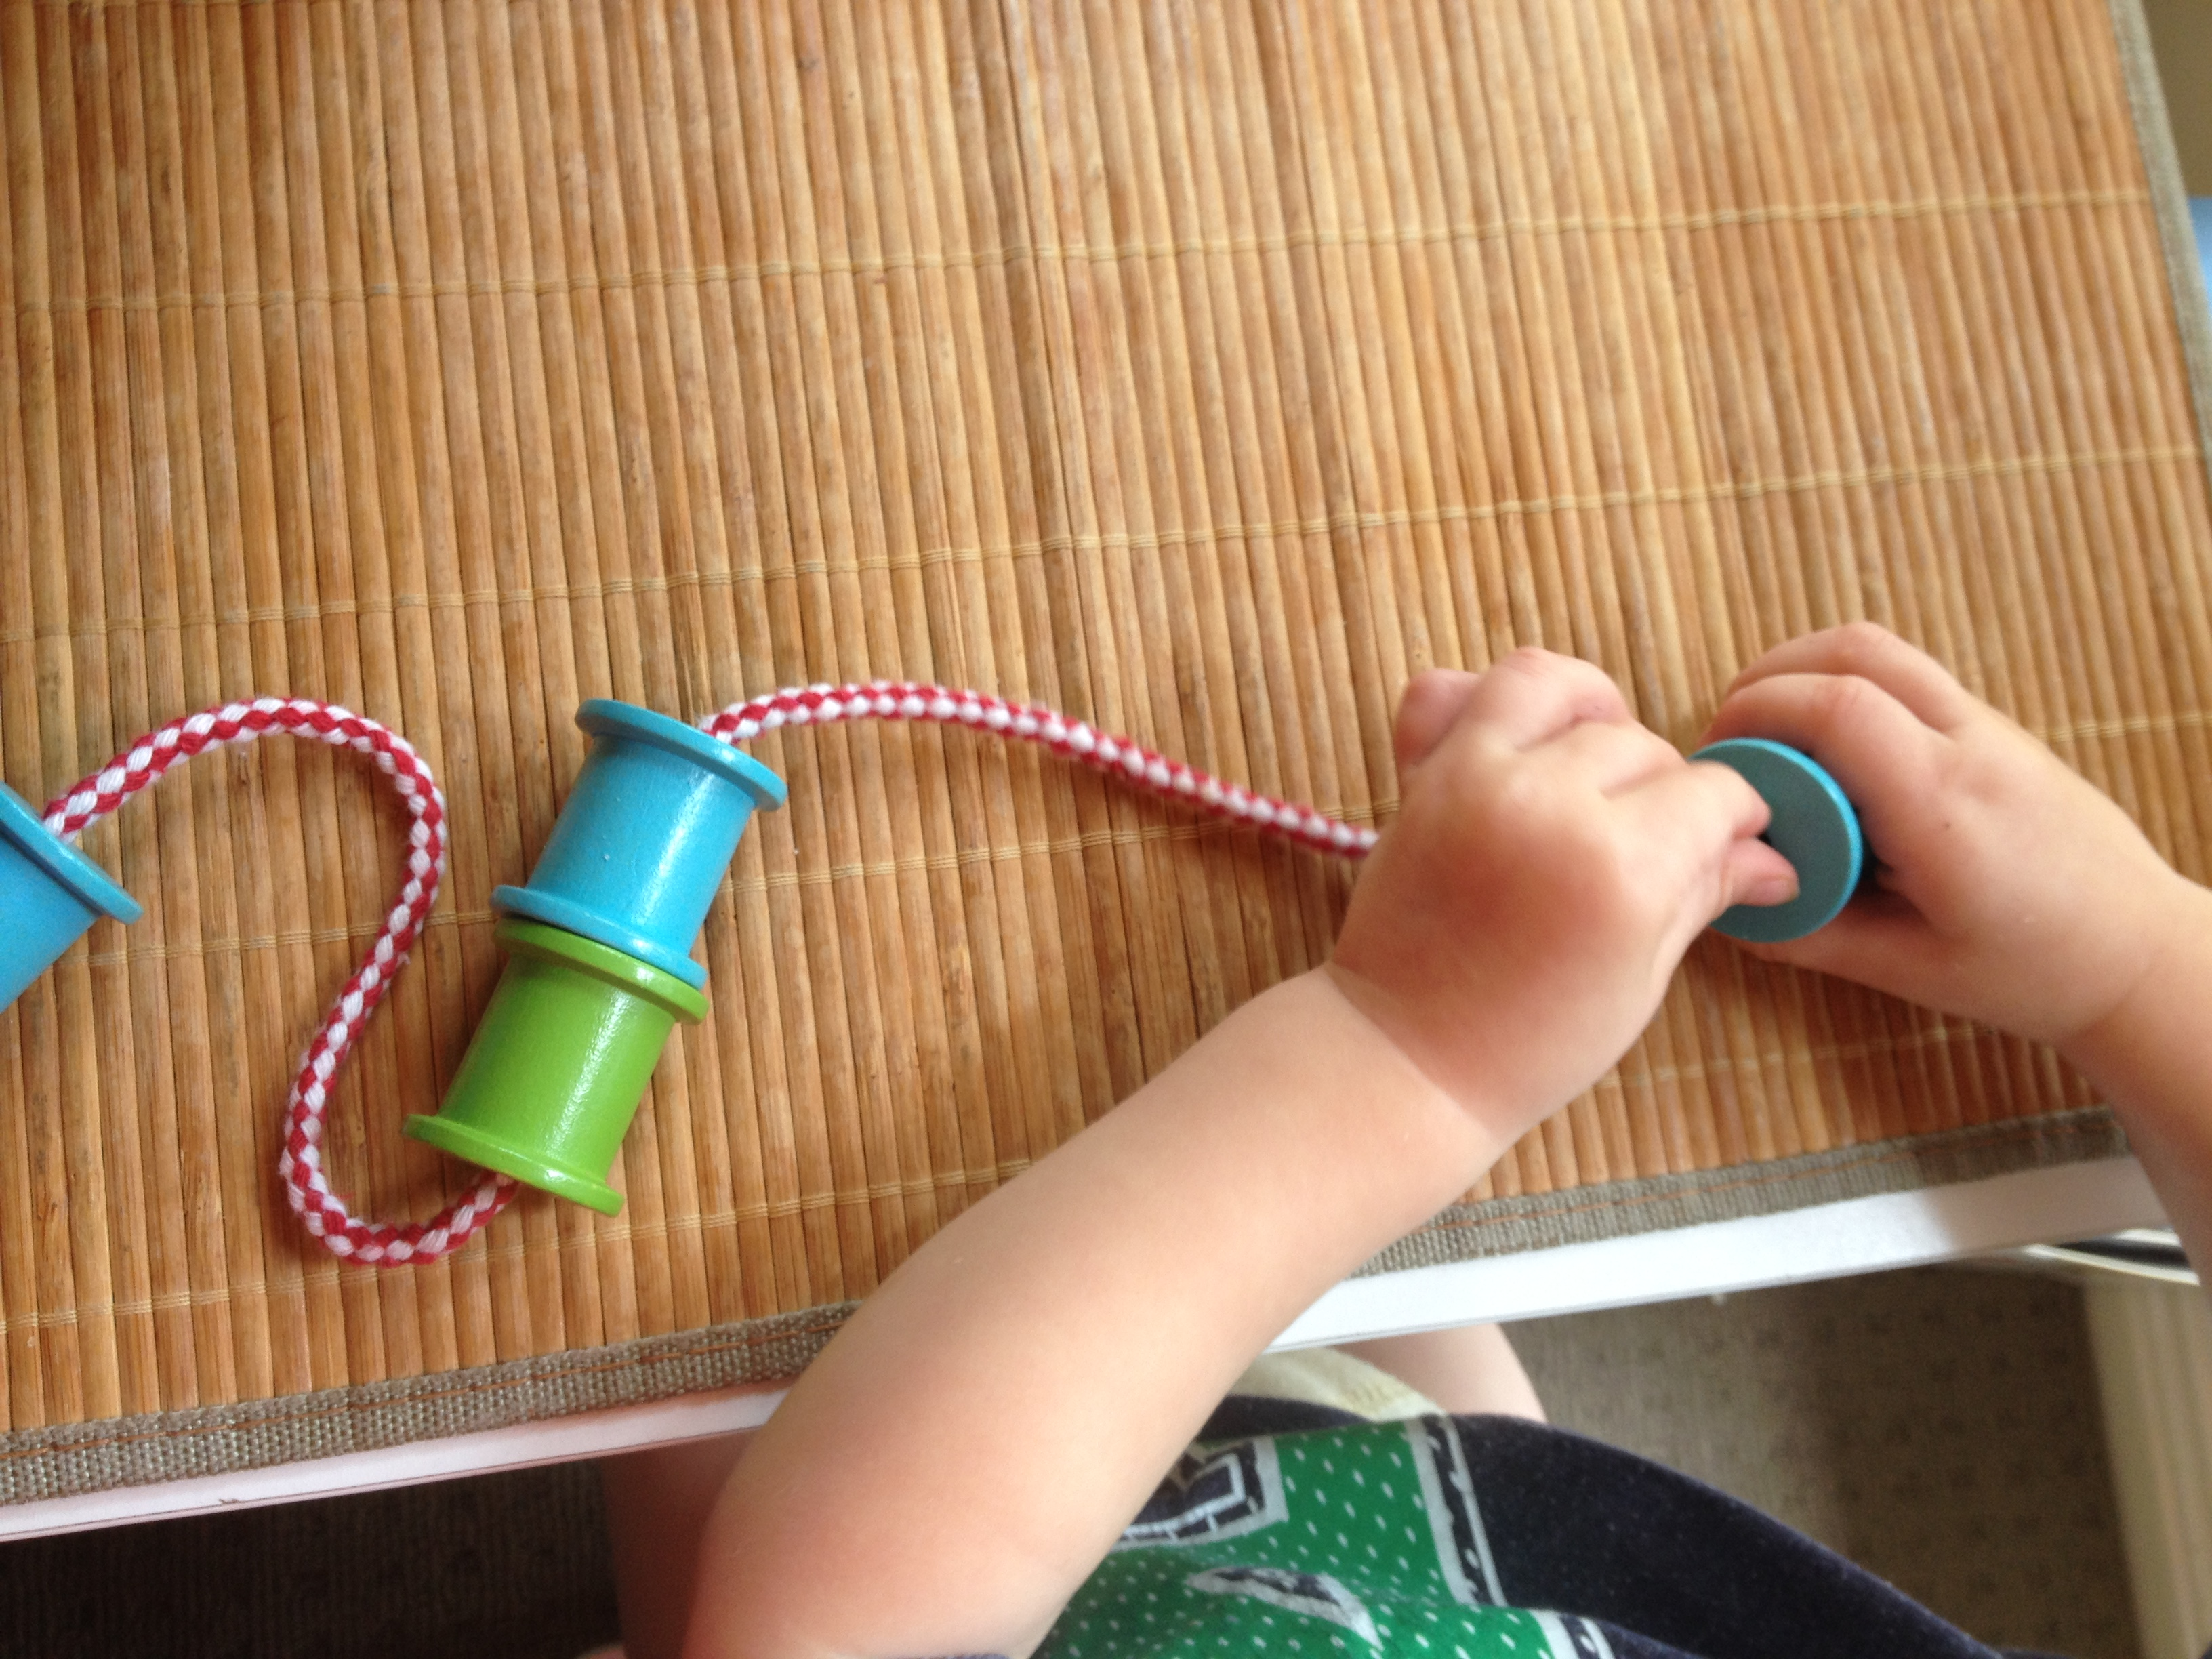 Sewing Lacing And Weaving Ideas With A Toddler Every Day Begins New